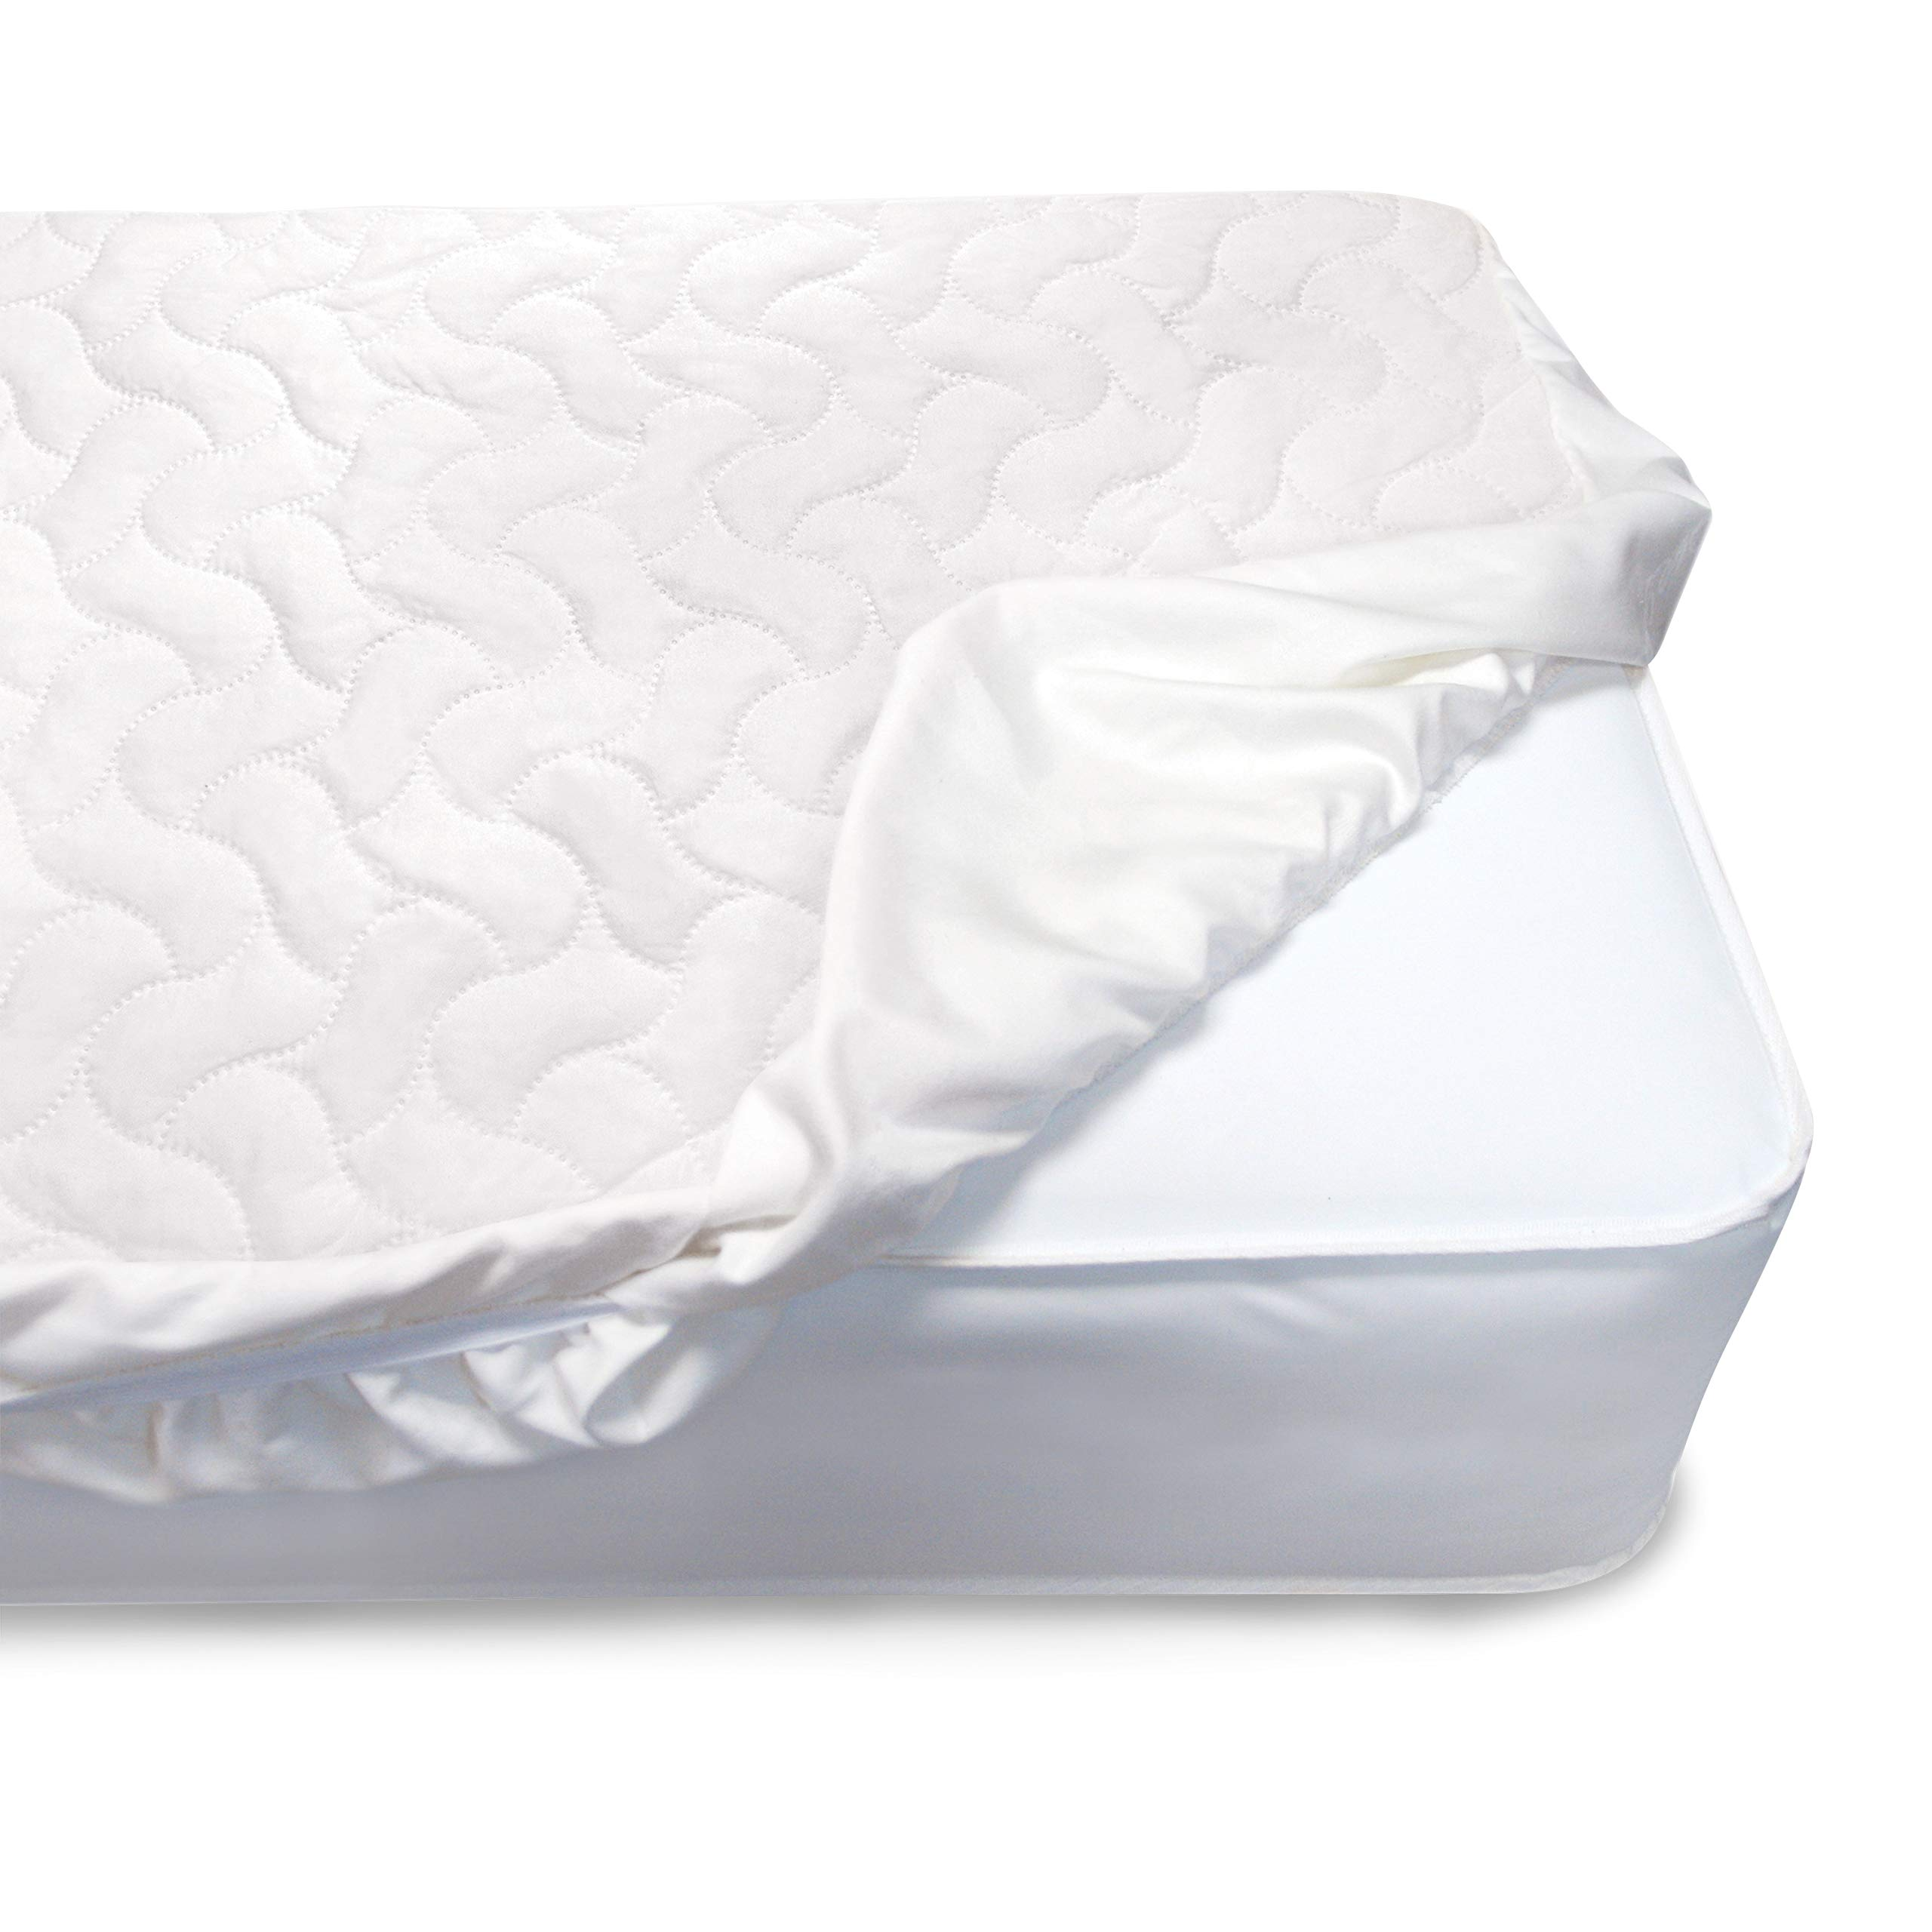 Serta Sertapedic Crib Mattress Pad Cover/Protector with Nanotex Stain Repel and Release, White